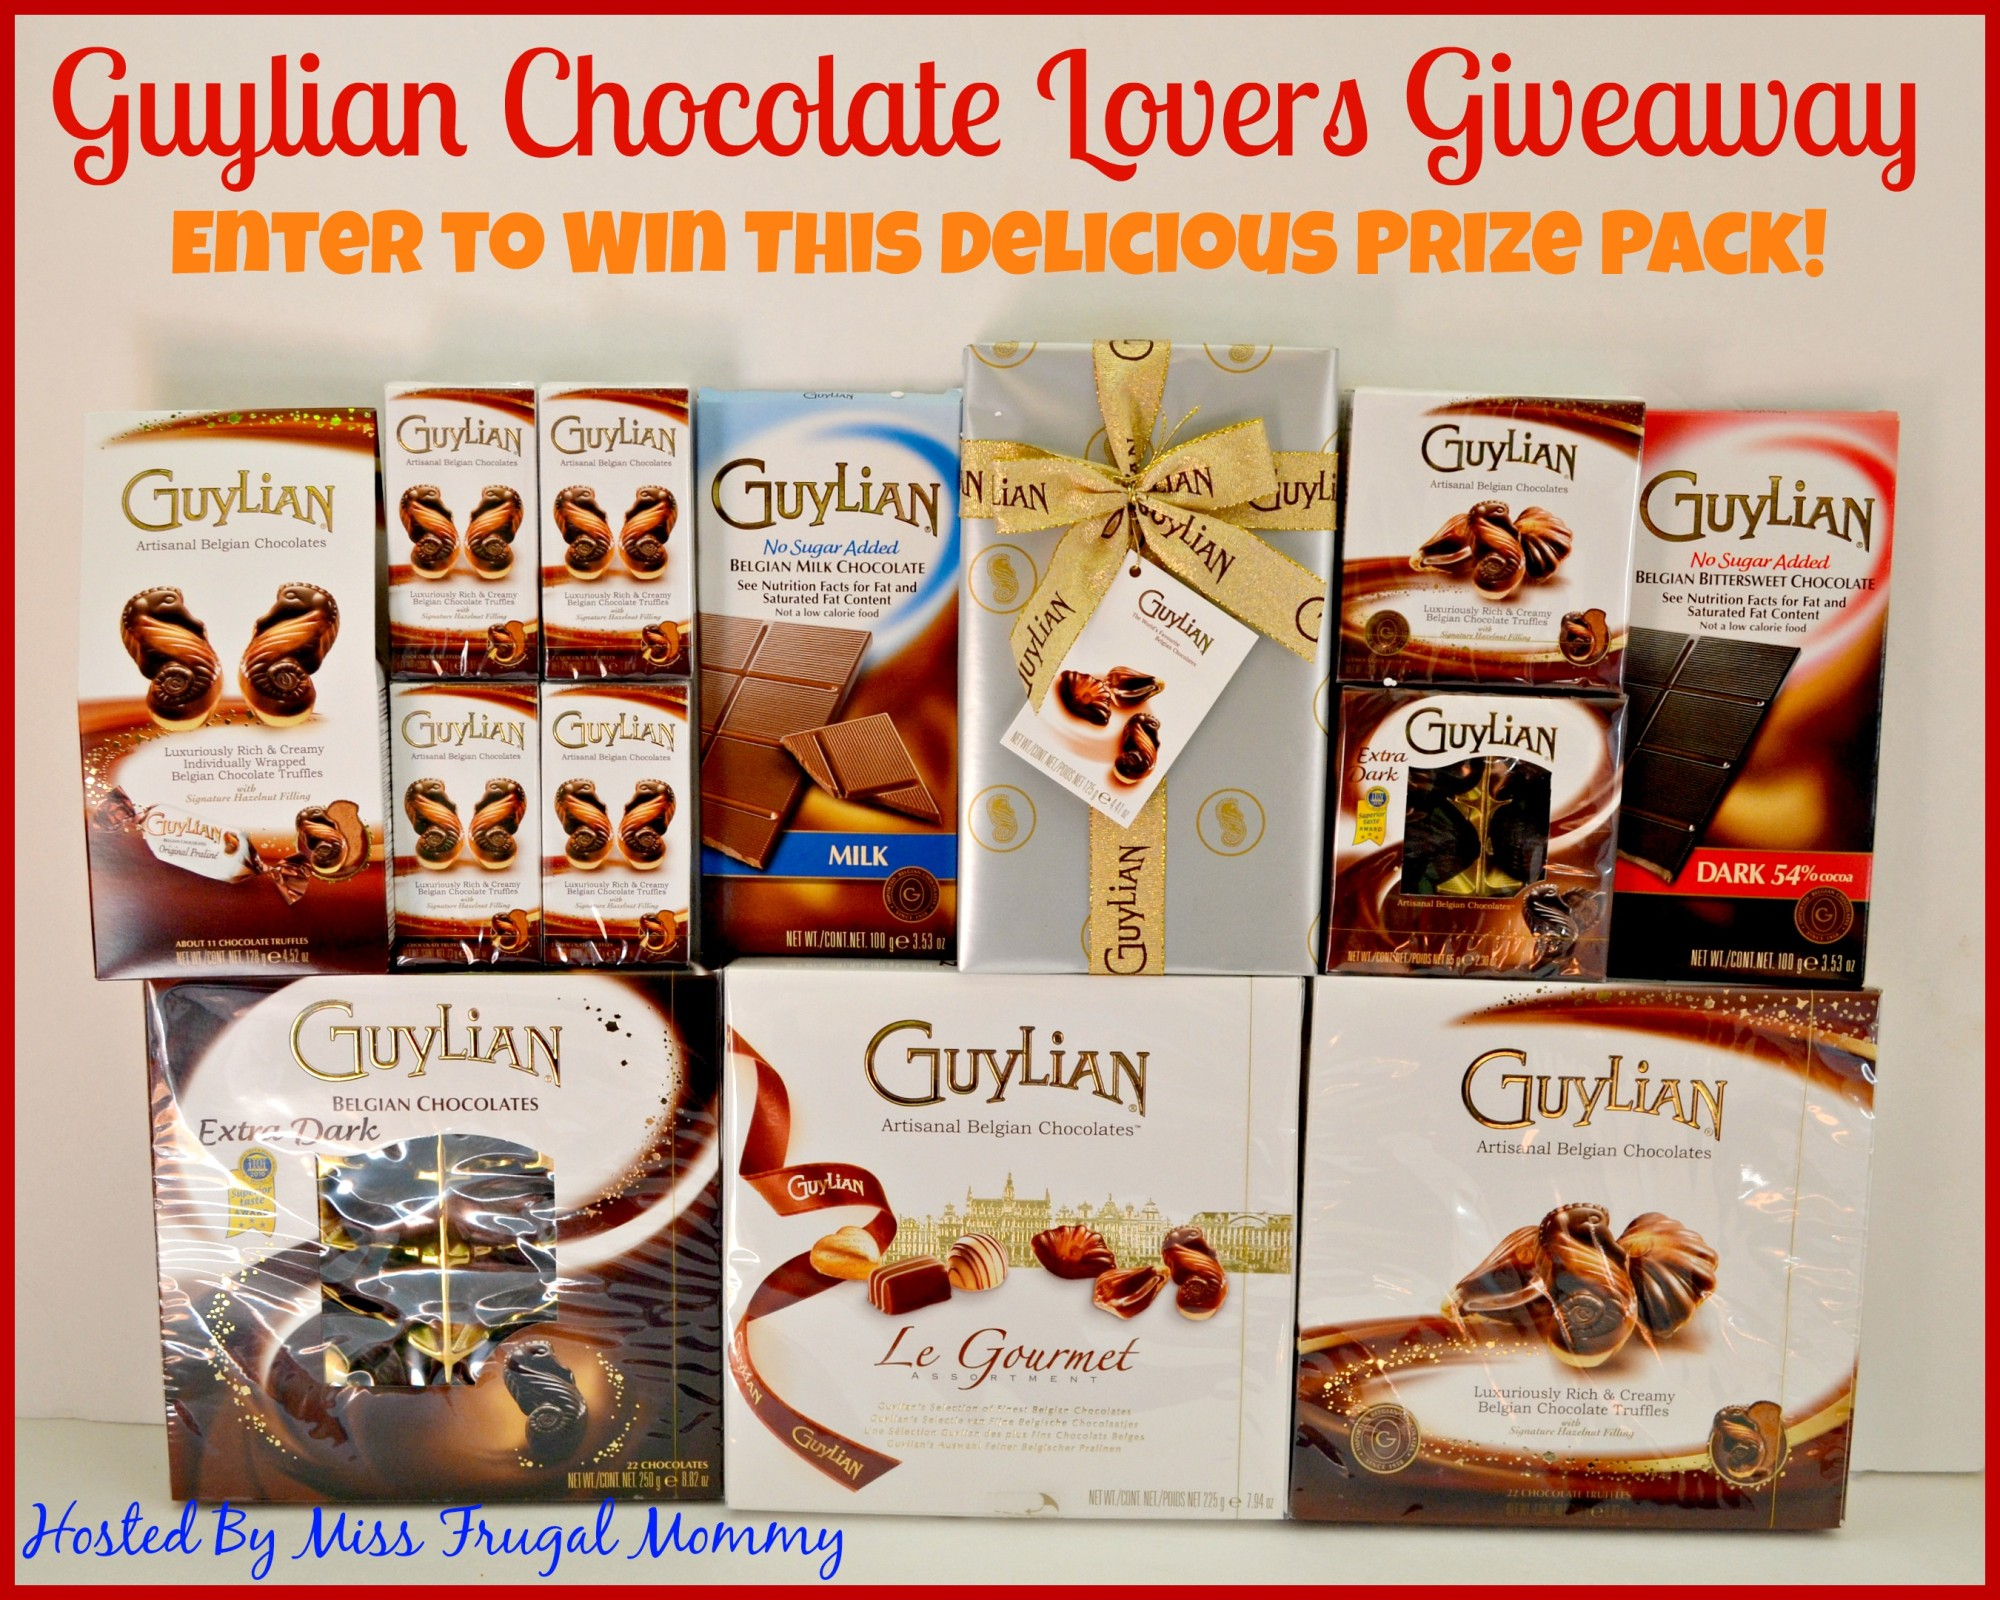 Guylian Chocolate Lovers Giveaway